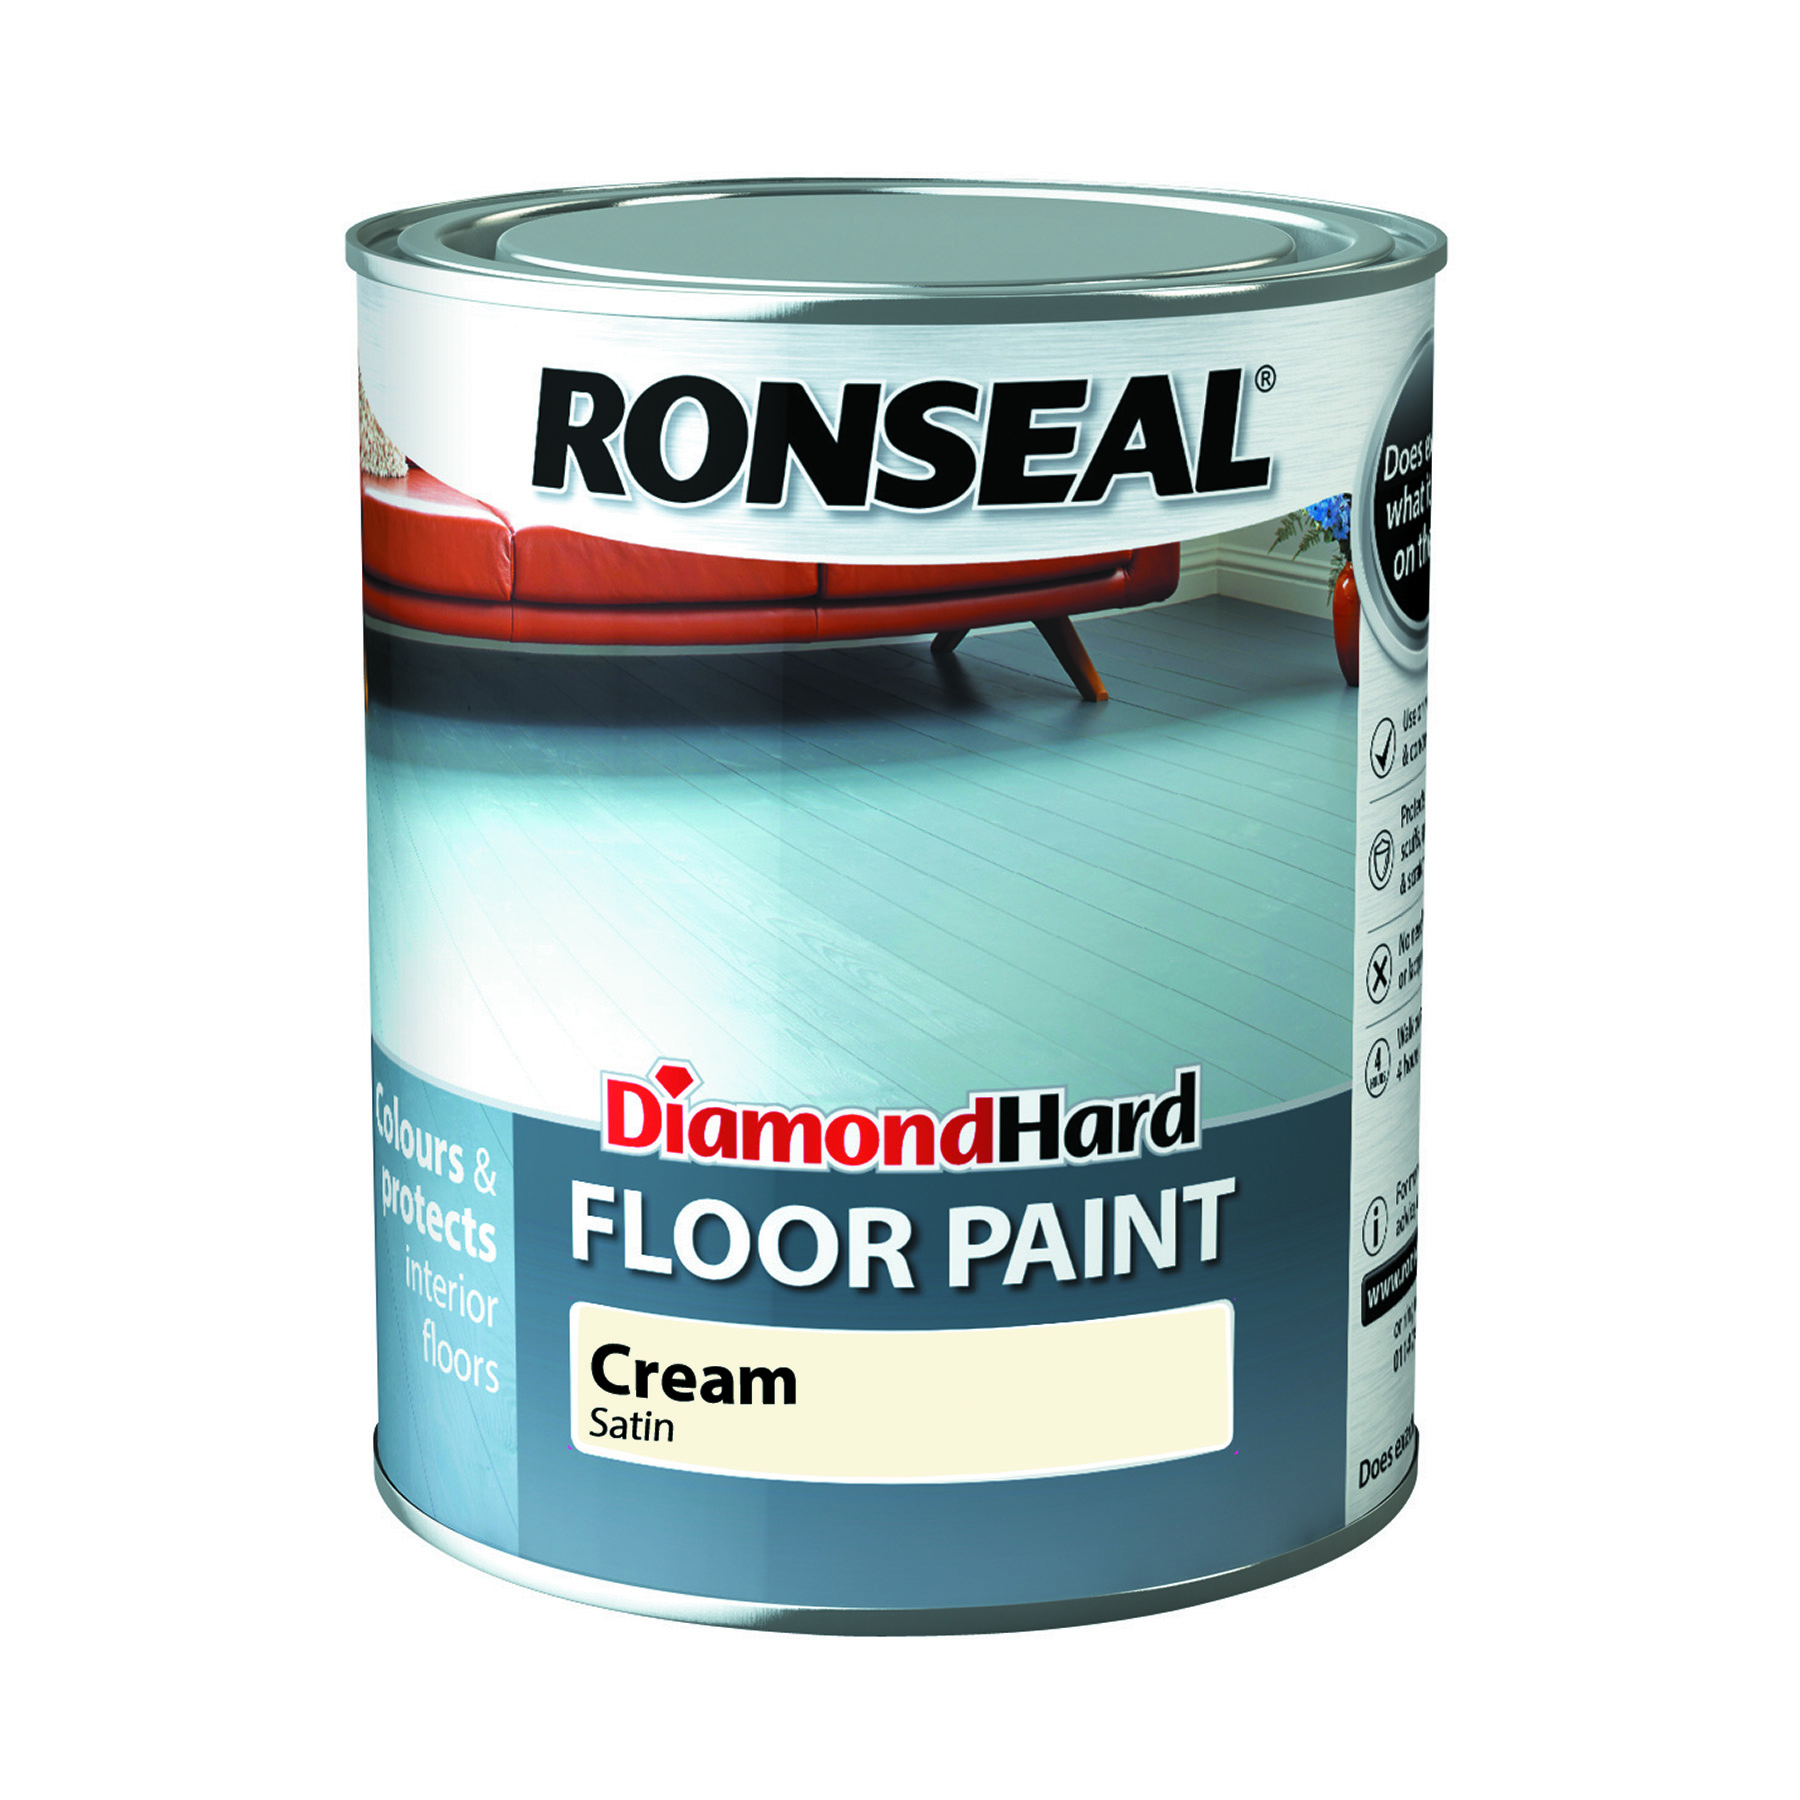 Ronseal Diamond Hard Floor Paint 2.5l Cream